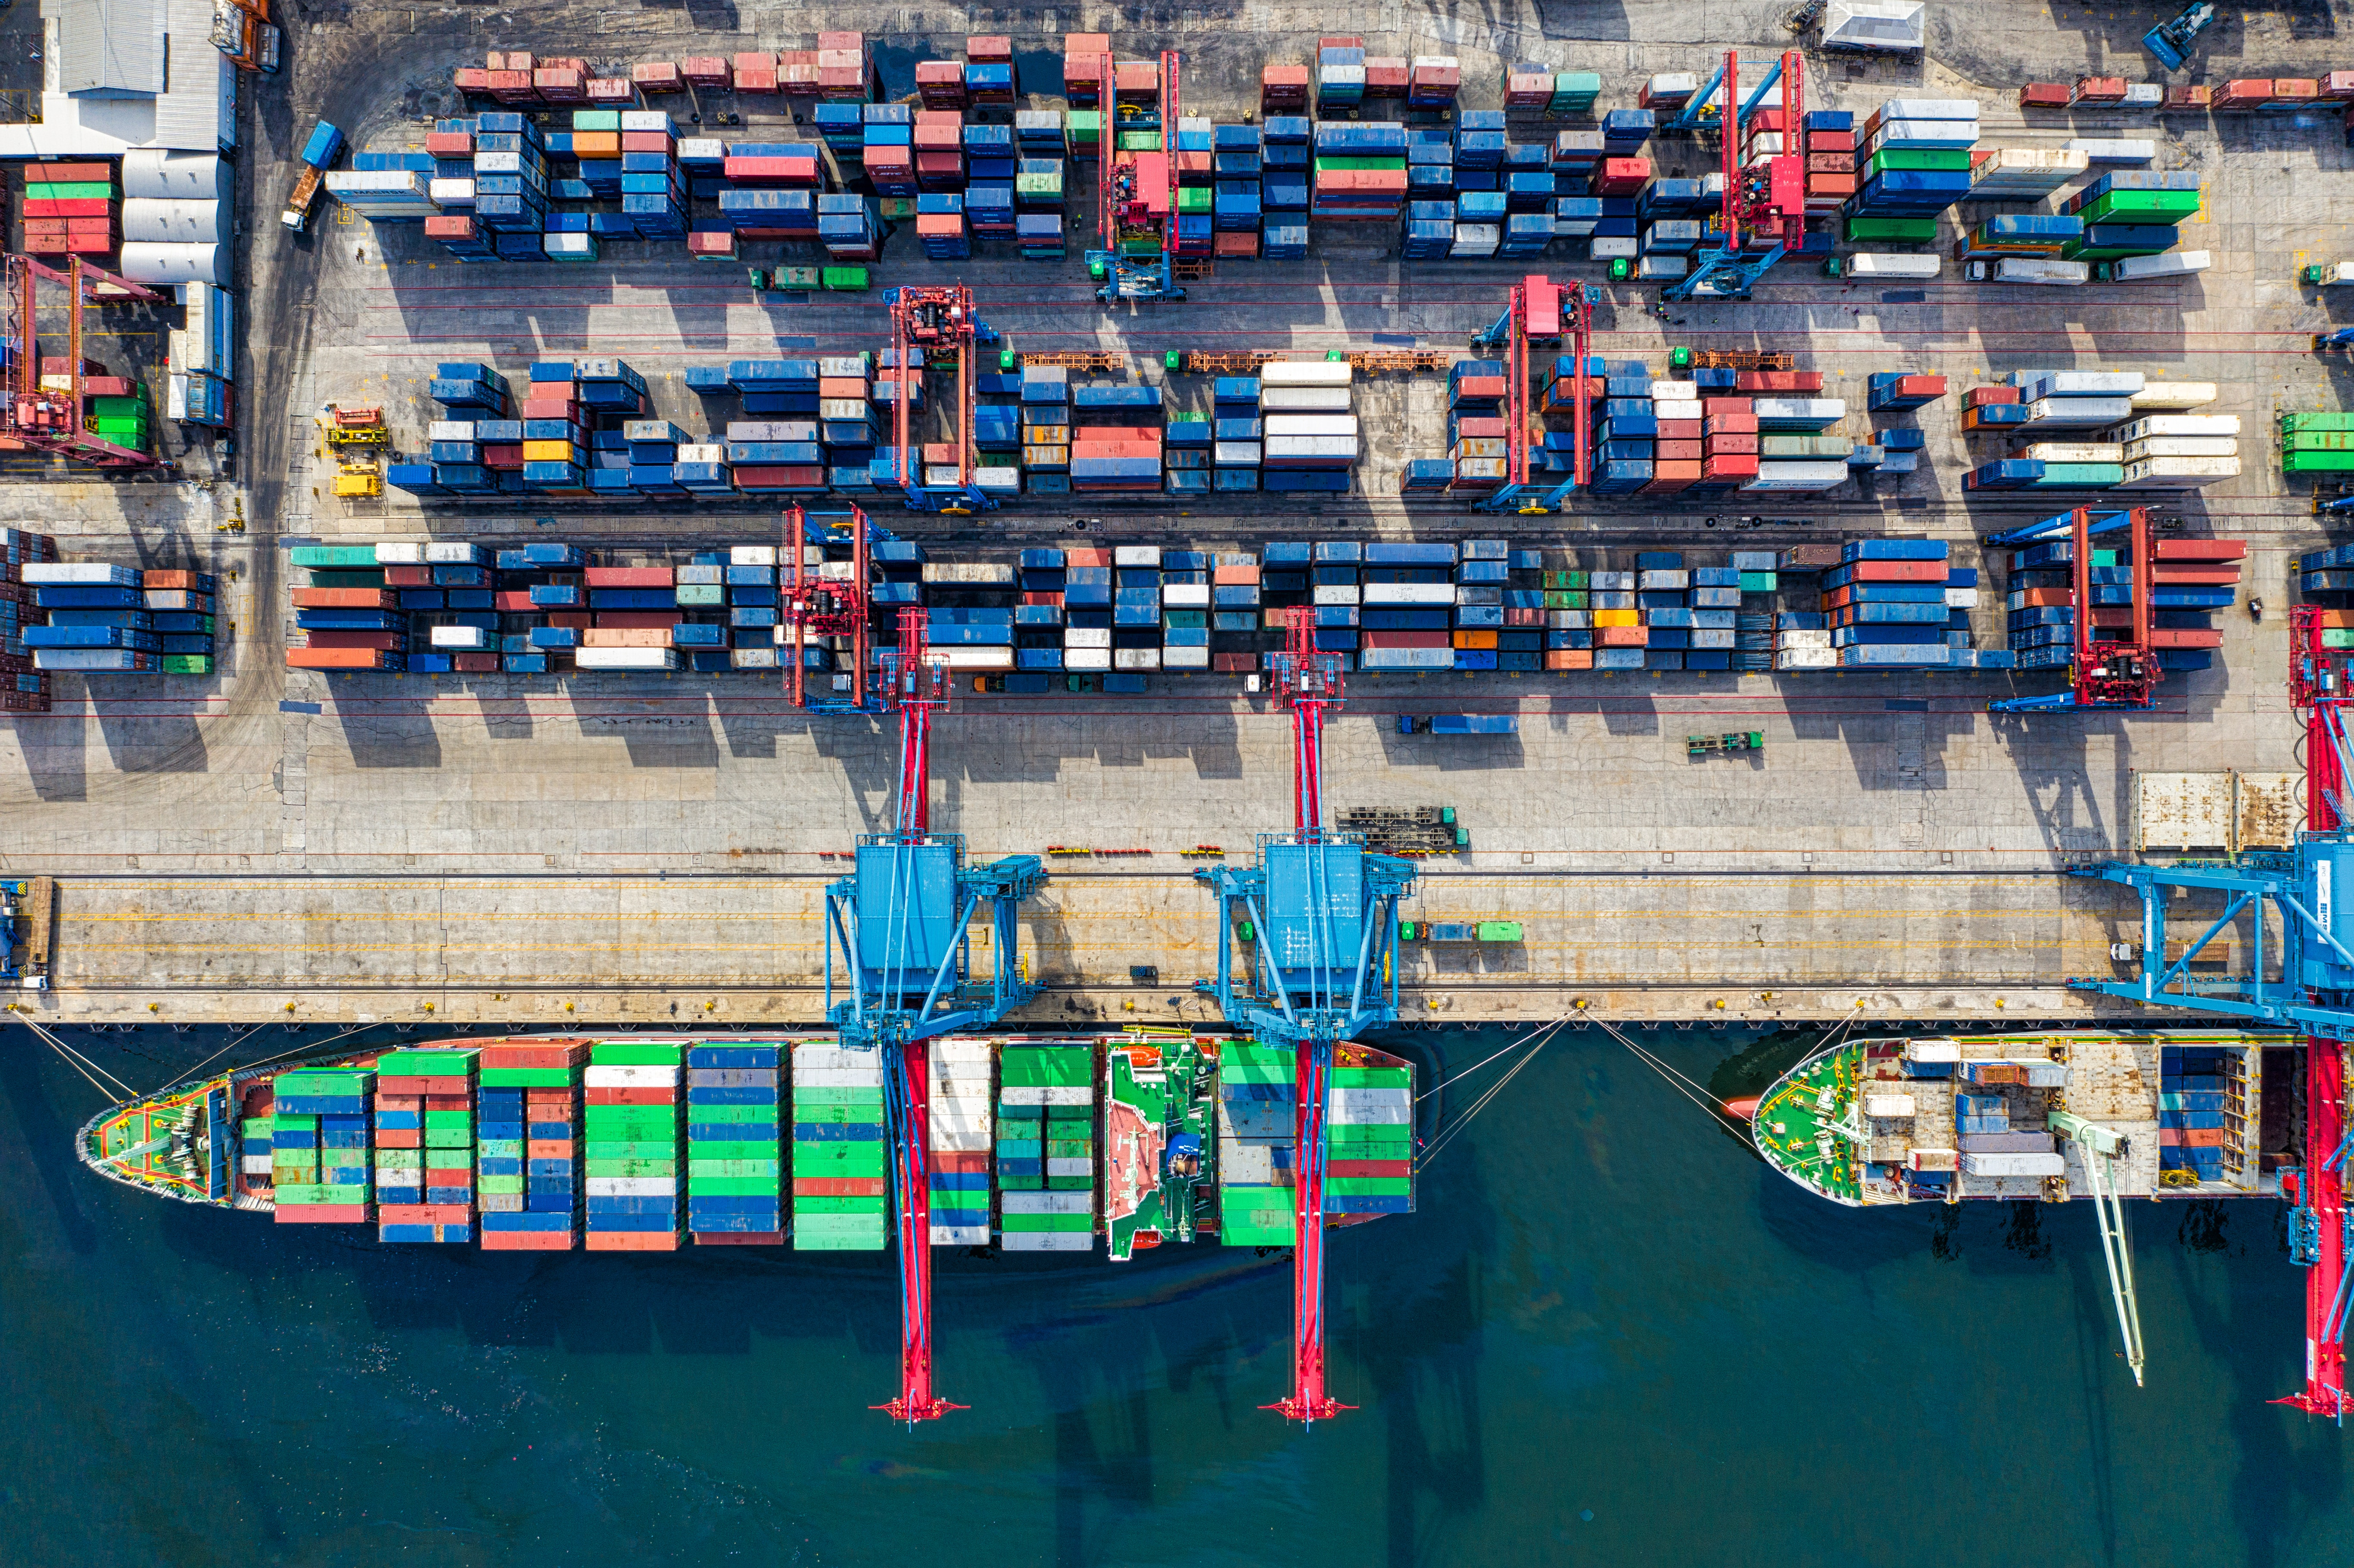 Shipping port with container vessels